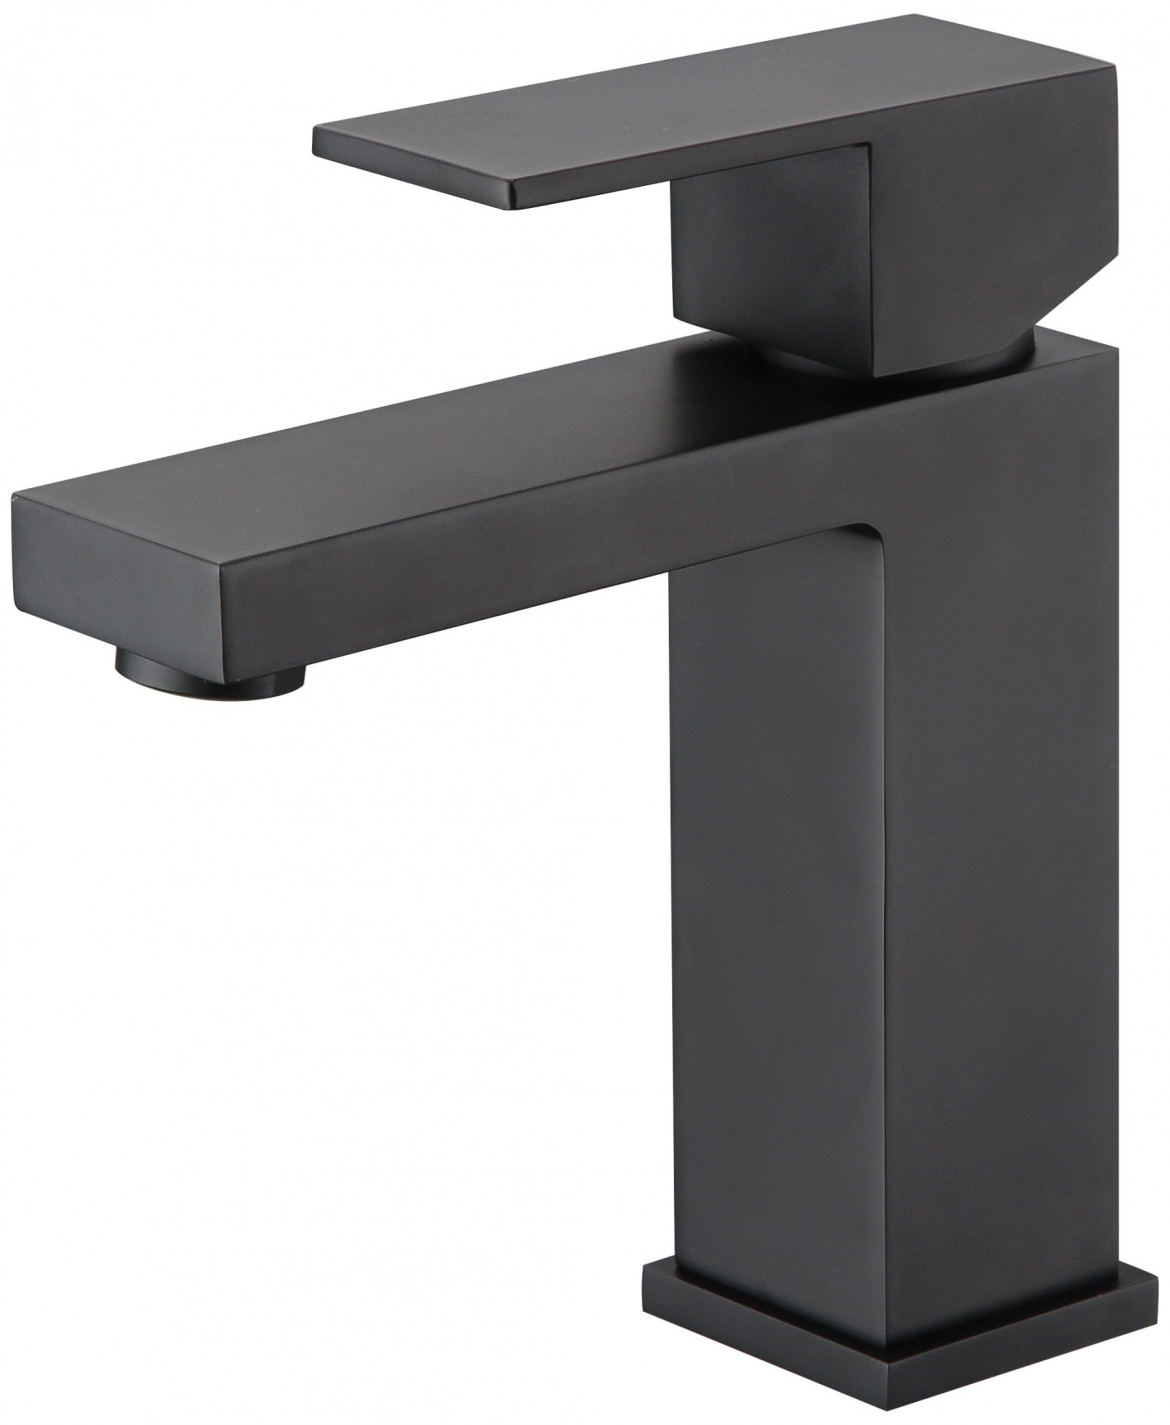 Square basin mixer tap in black